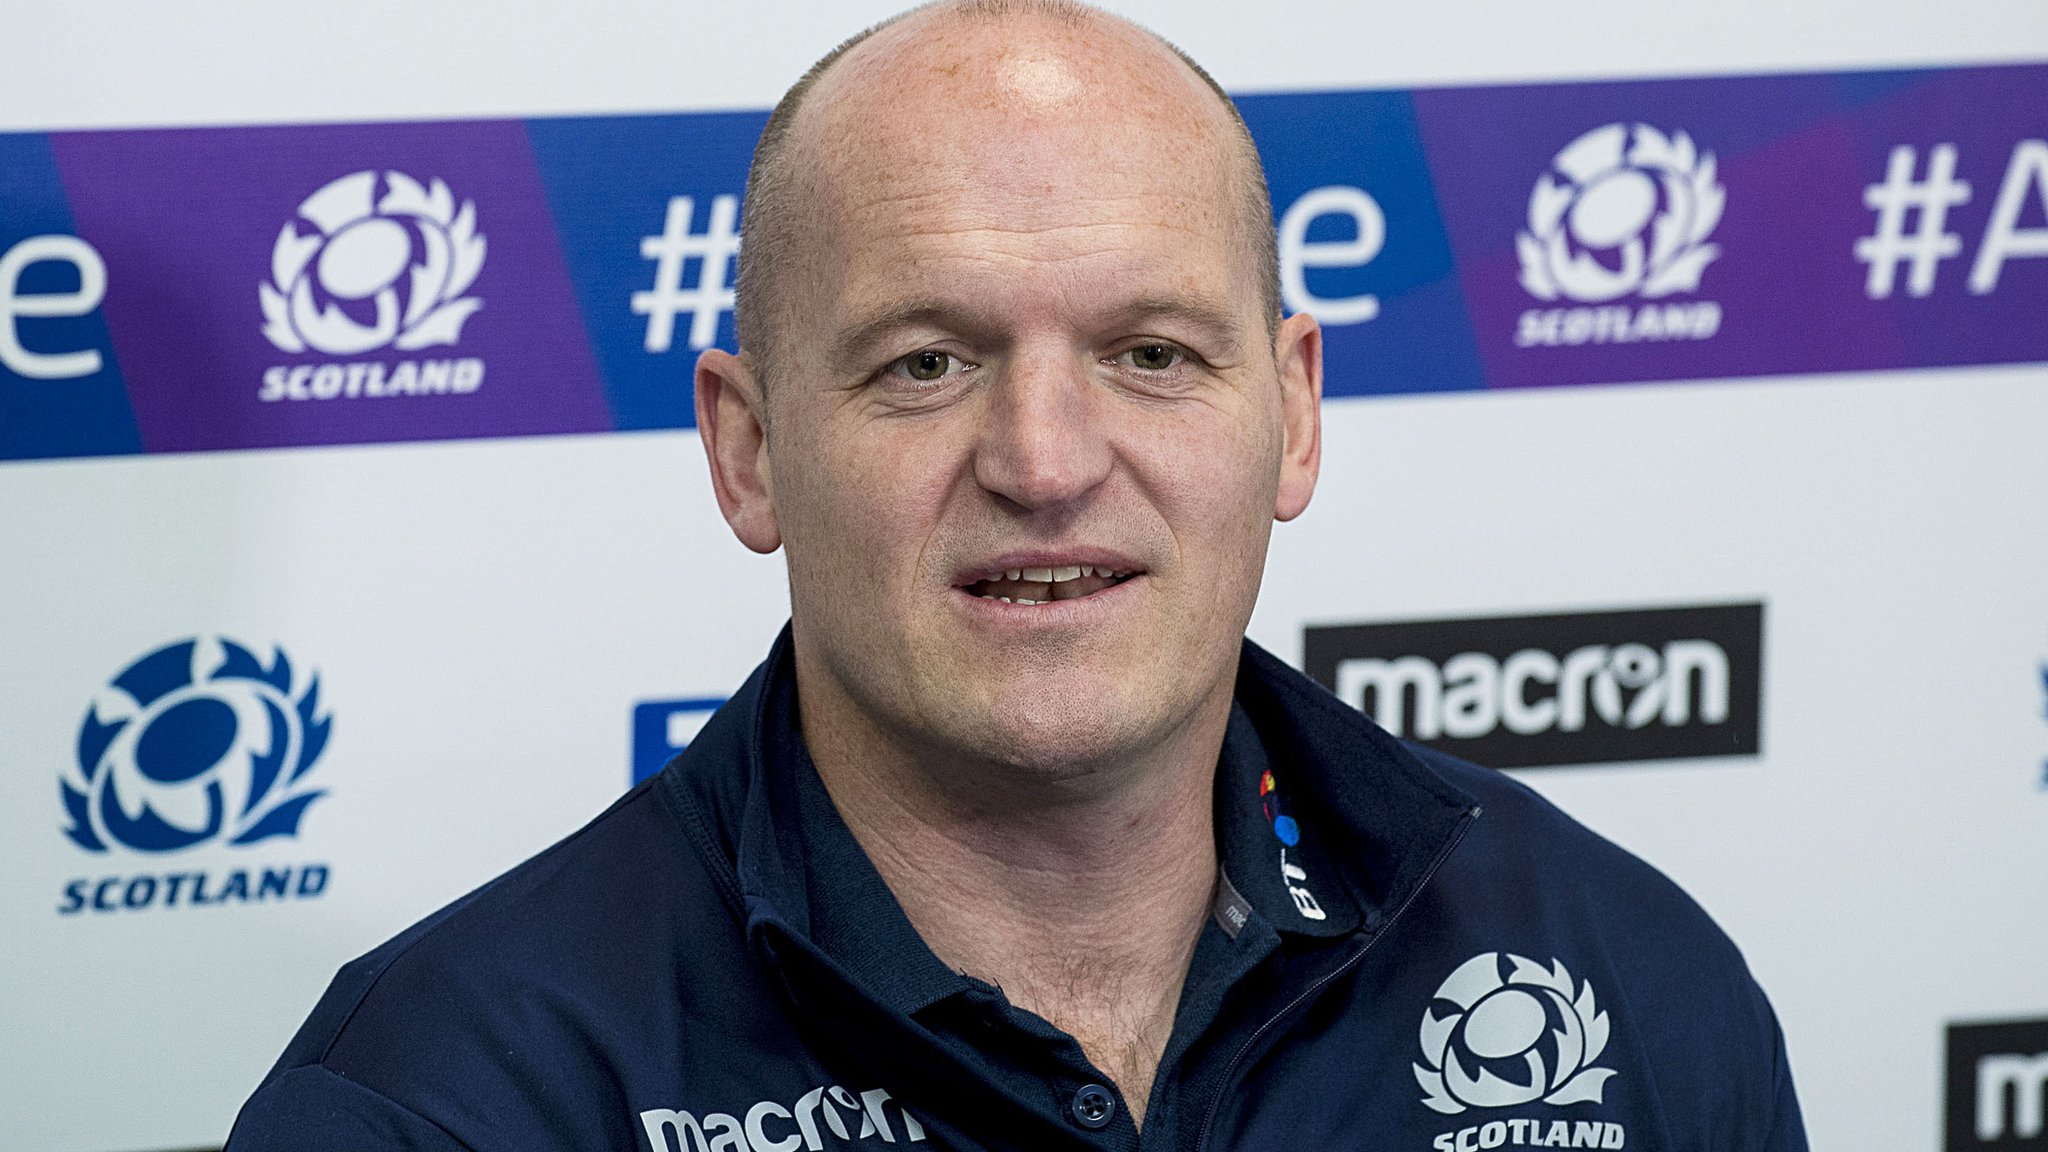 Scots must believe they can beat NZ - Townsend